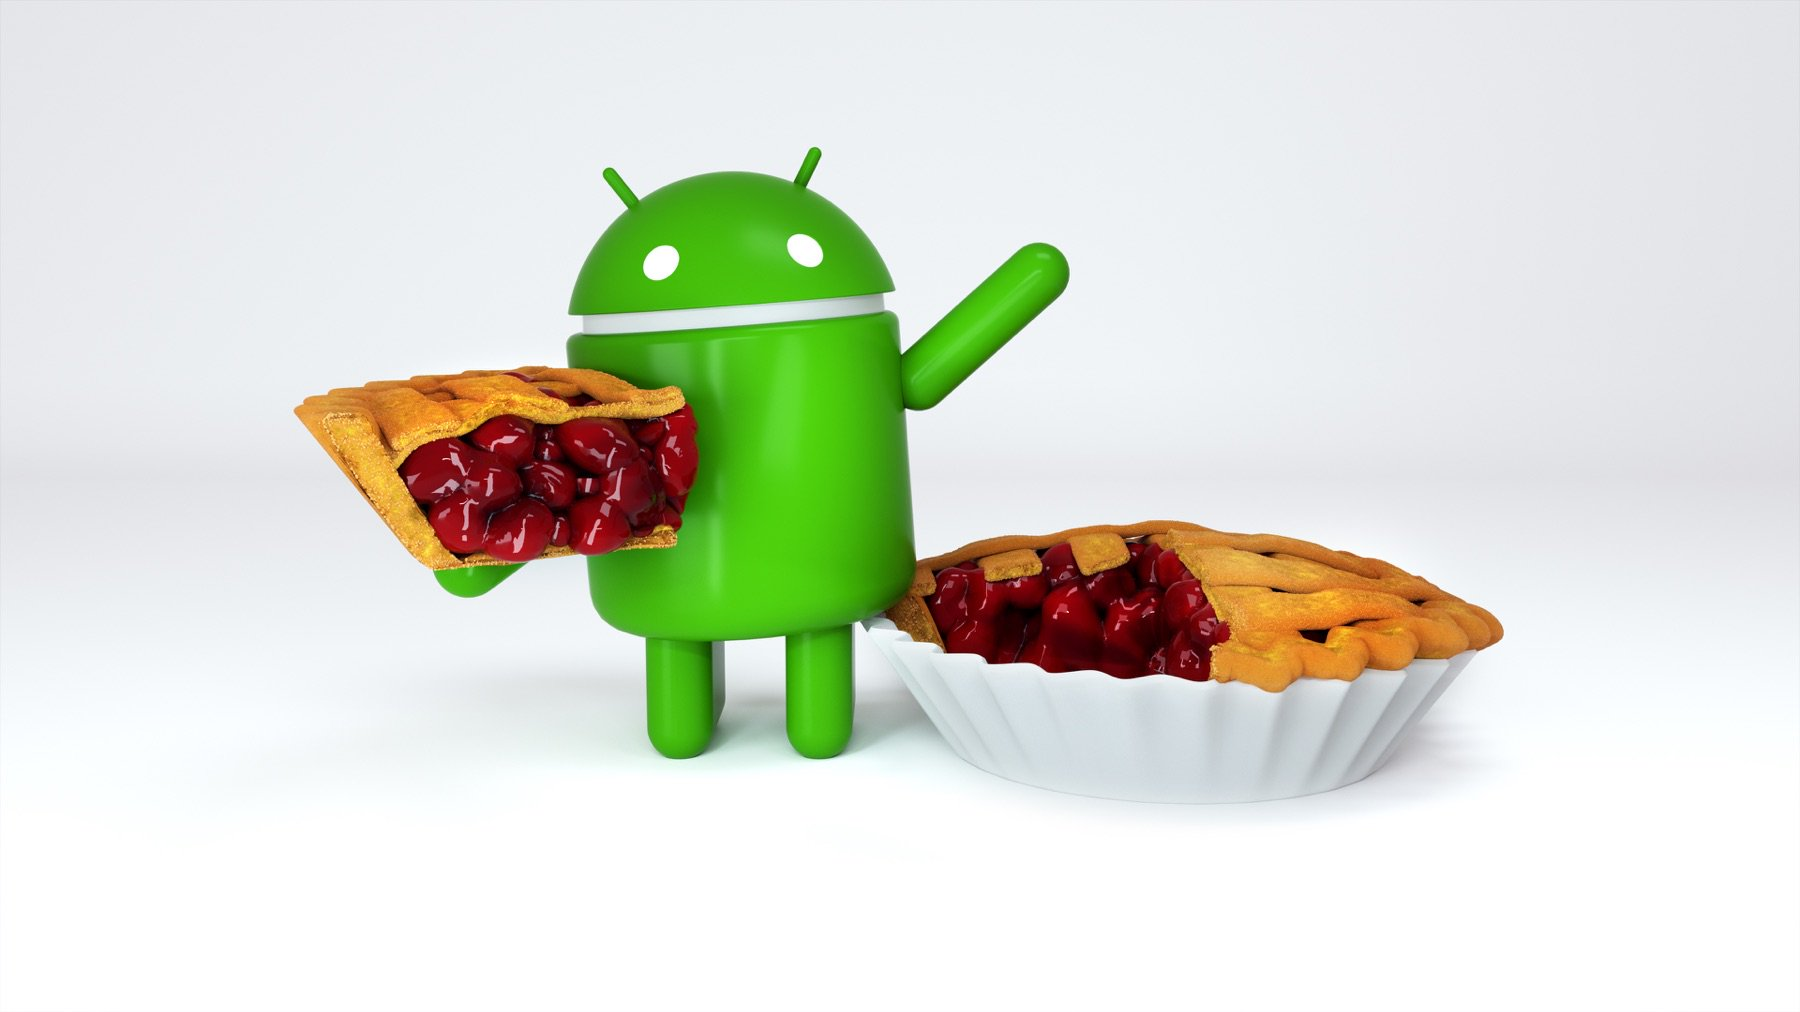 Android 9 Pie starts baking